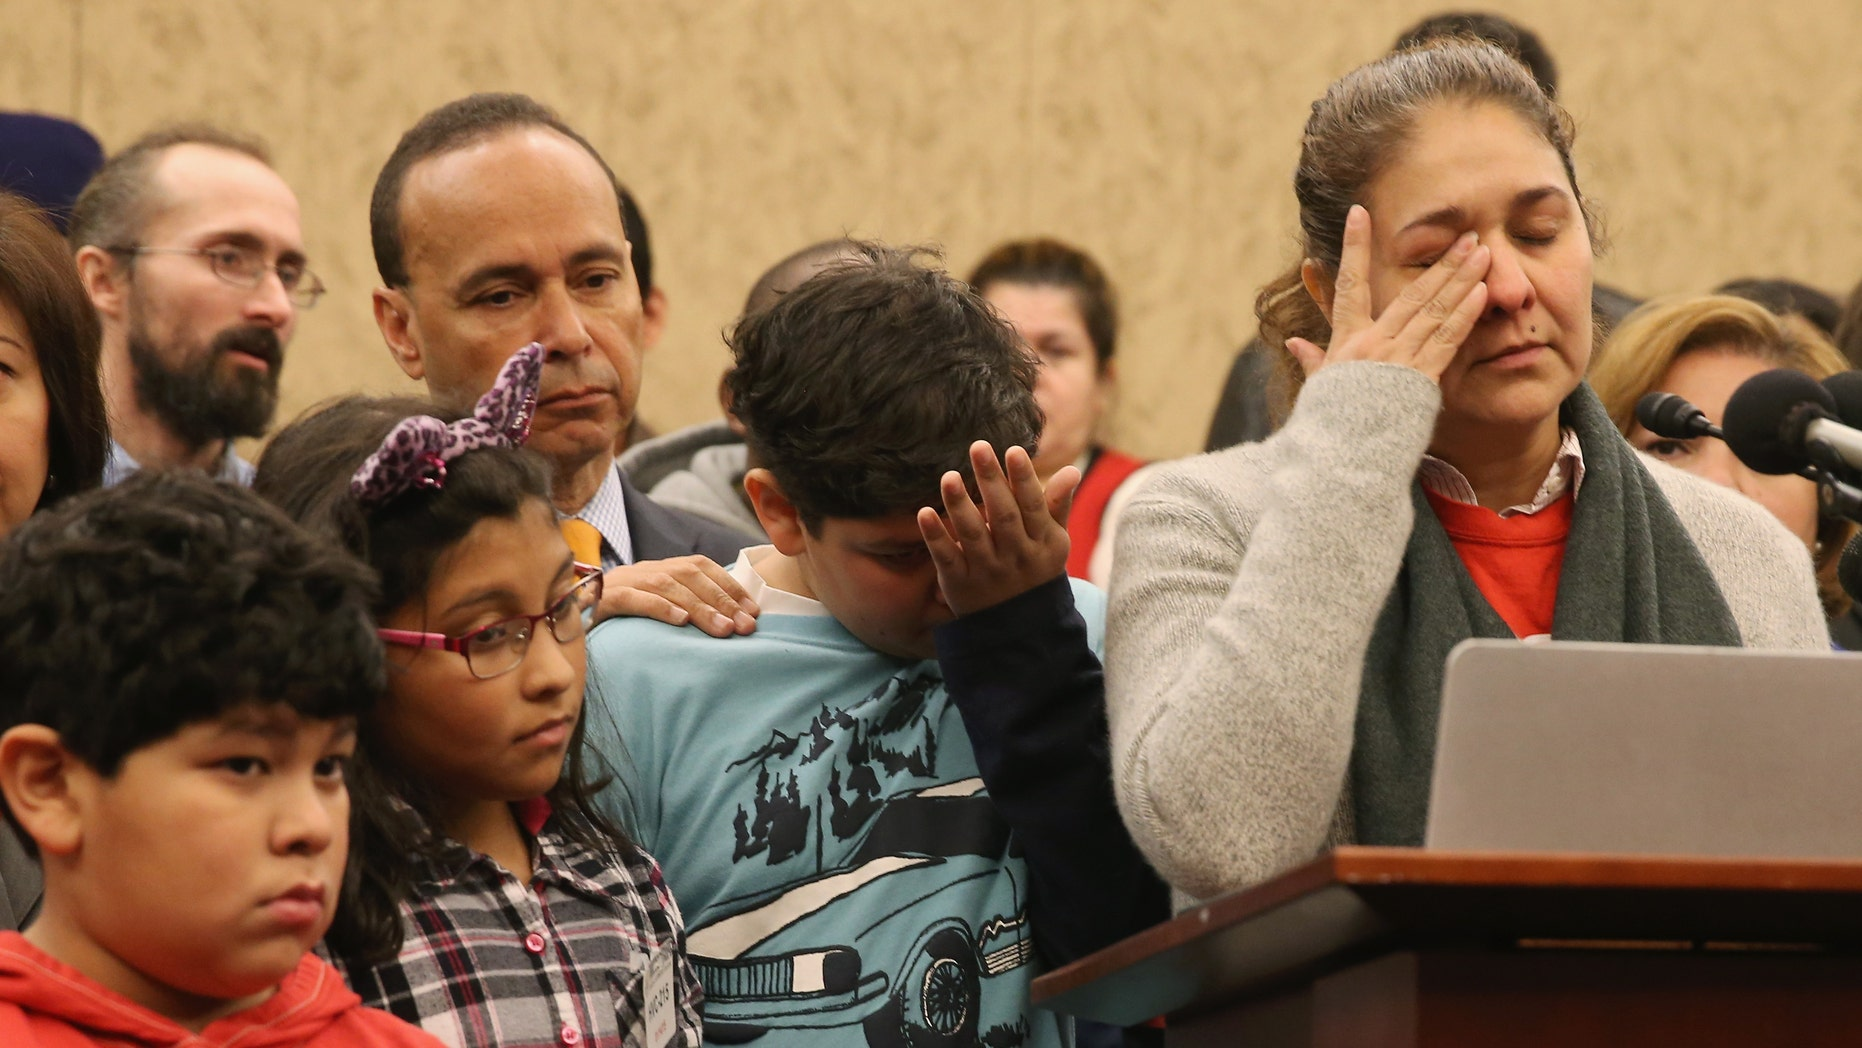 WASHINGTON, DC - JANUARY 14: Isabel Aguilar (R) speaks about immigration while flanked by her children Adolfo Martinez 13 (C), Miranda Aguilar 8 (2ndL), and Emillio Aguilar 7 (L), during a news conference on Capitol Hill, January 14, 2015 in Washington, DC. Ms. Aguilar joined House Democrats to urge members of Congress not to pass legislation to fund the Department of Homeland Security with attached anti-immigrant amendments. (Photo by Mark Wilson/Getty Images)